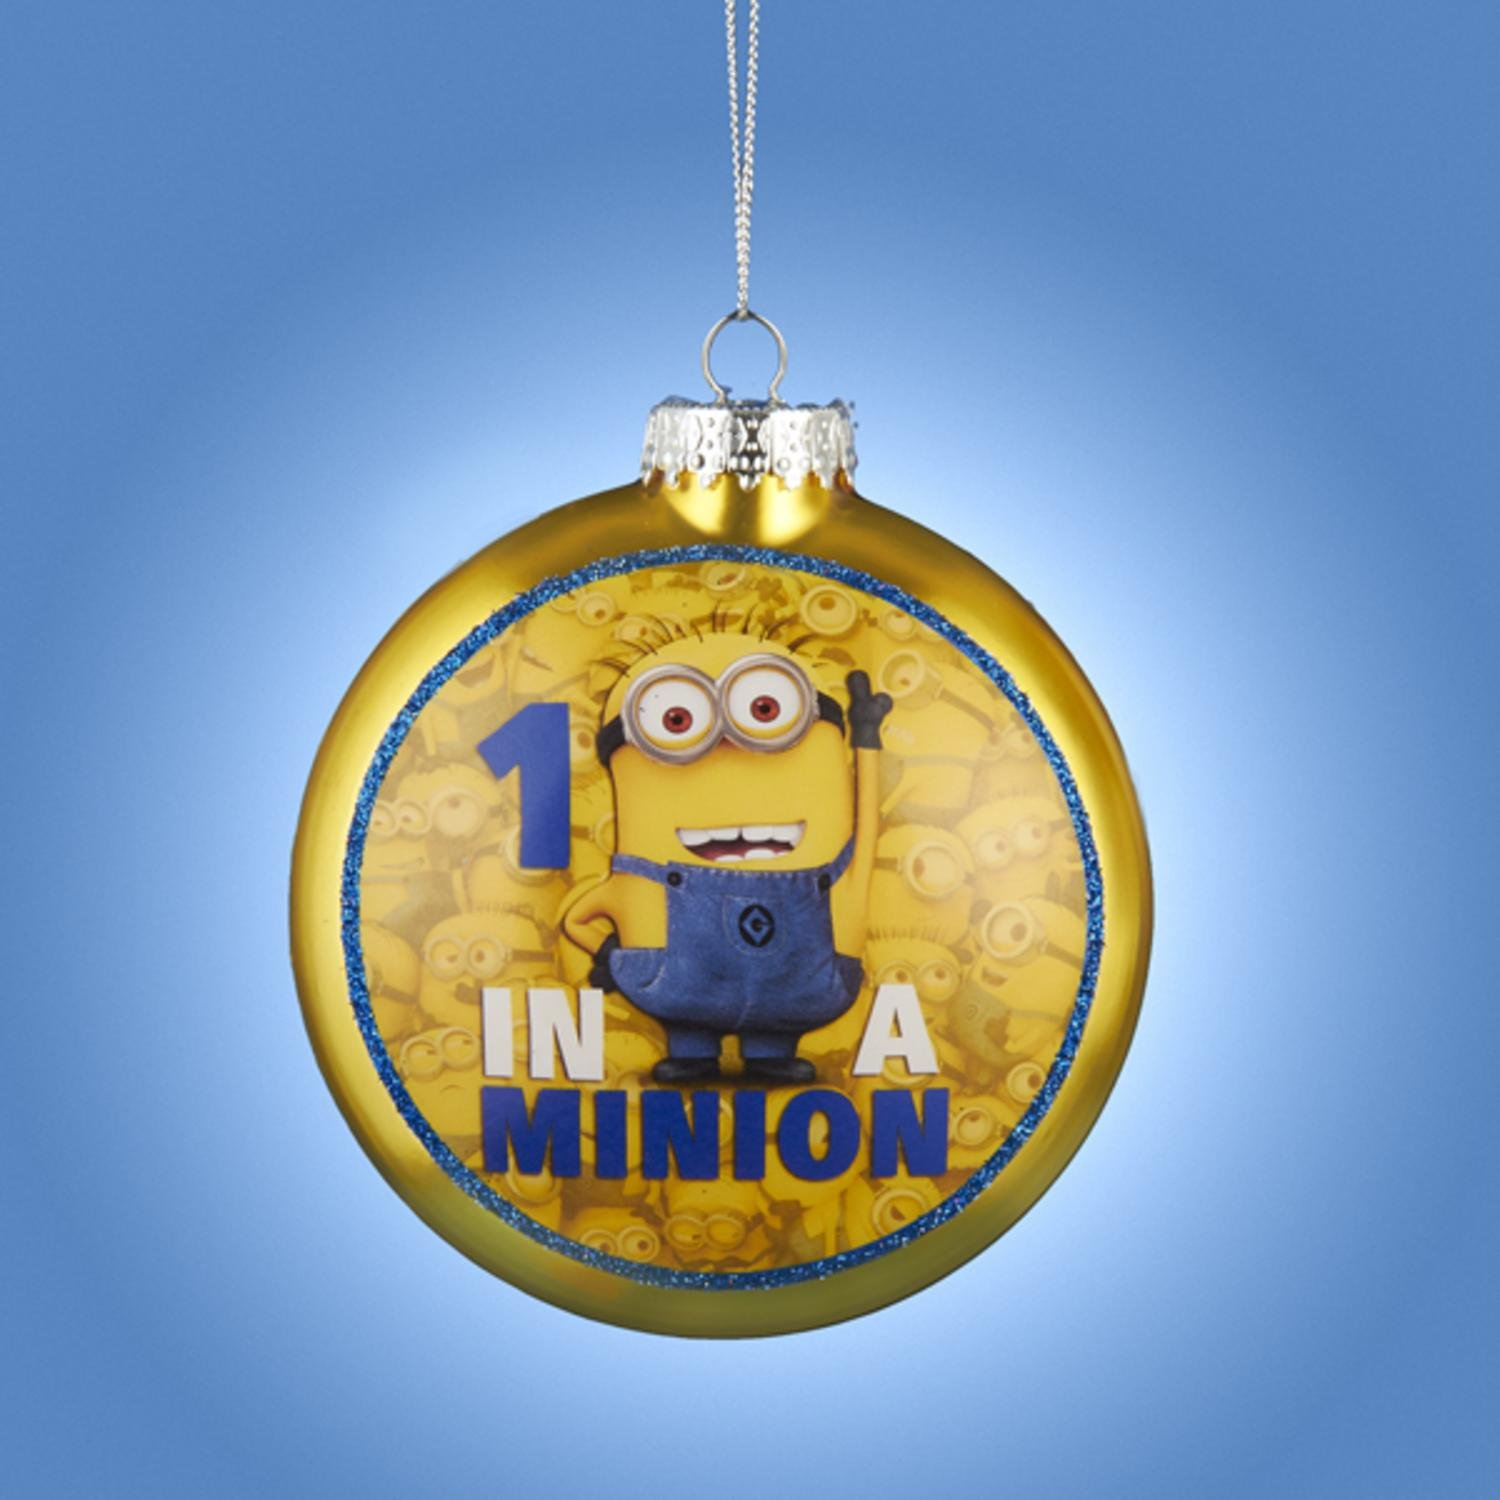 amazoncom 325 yellow and blue despicable me 1 in a minion glass disc christmas ornament home kitchen - Minion Christmas Ornament